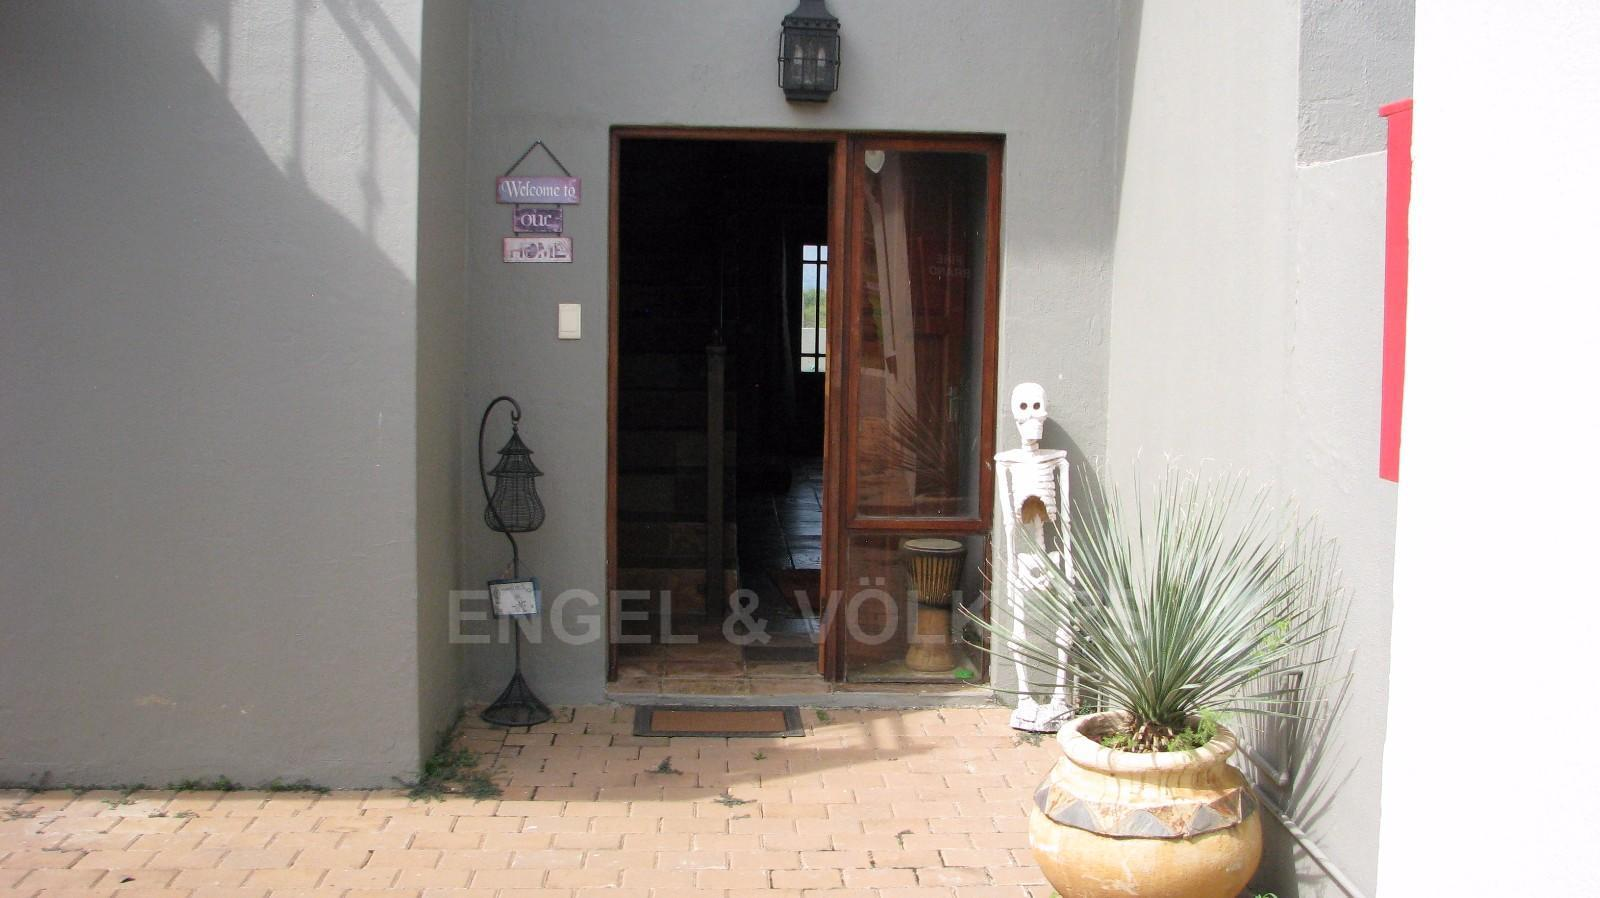 House in Melodie - Entrance to Property